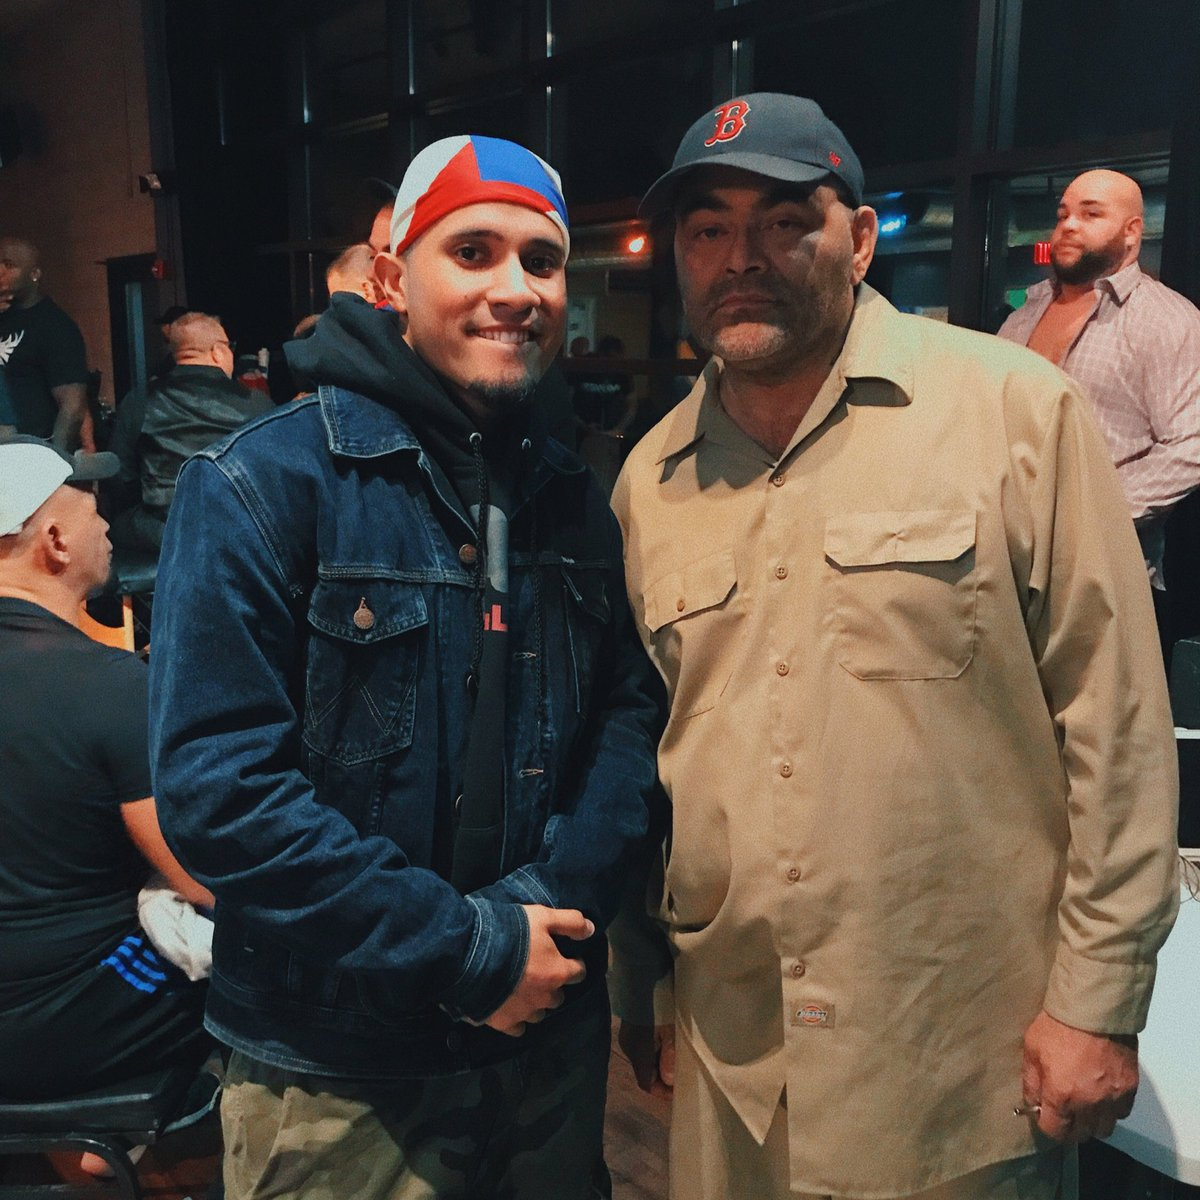 Konnan5150 photo